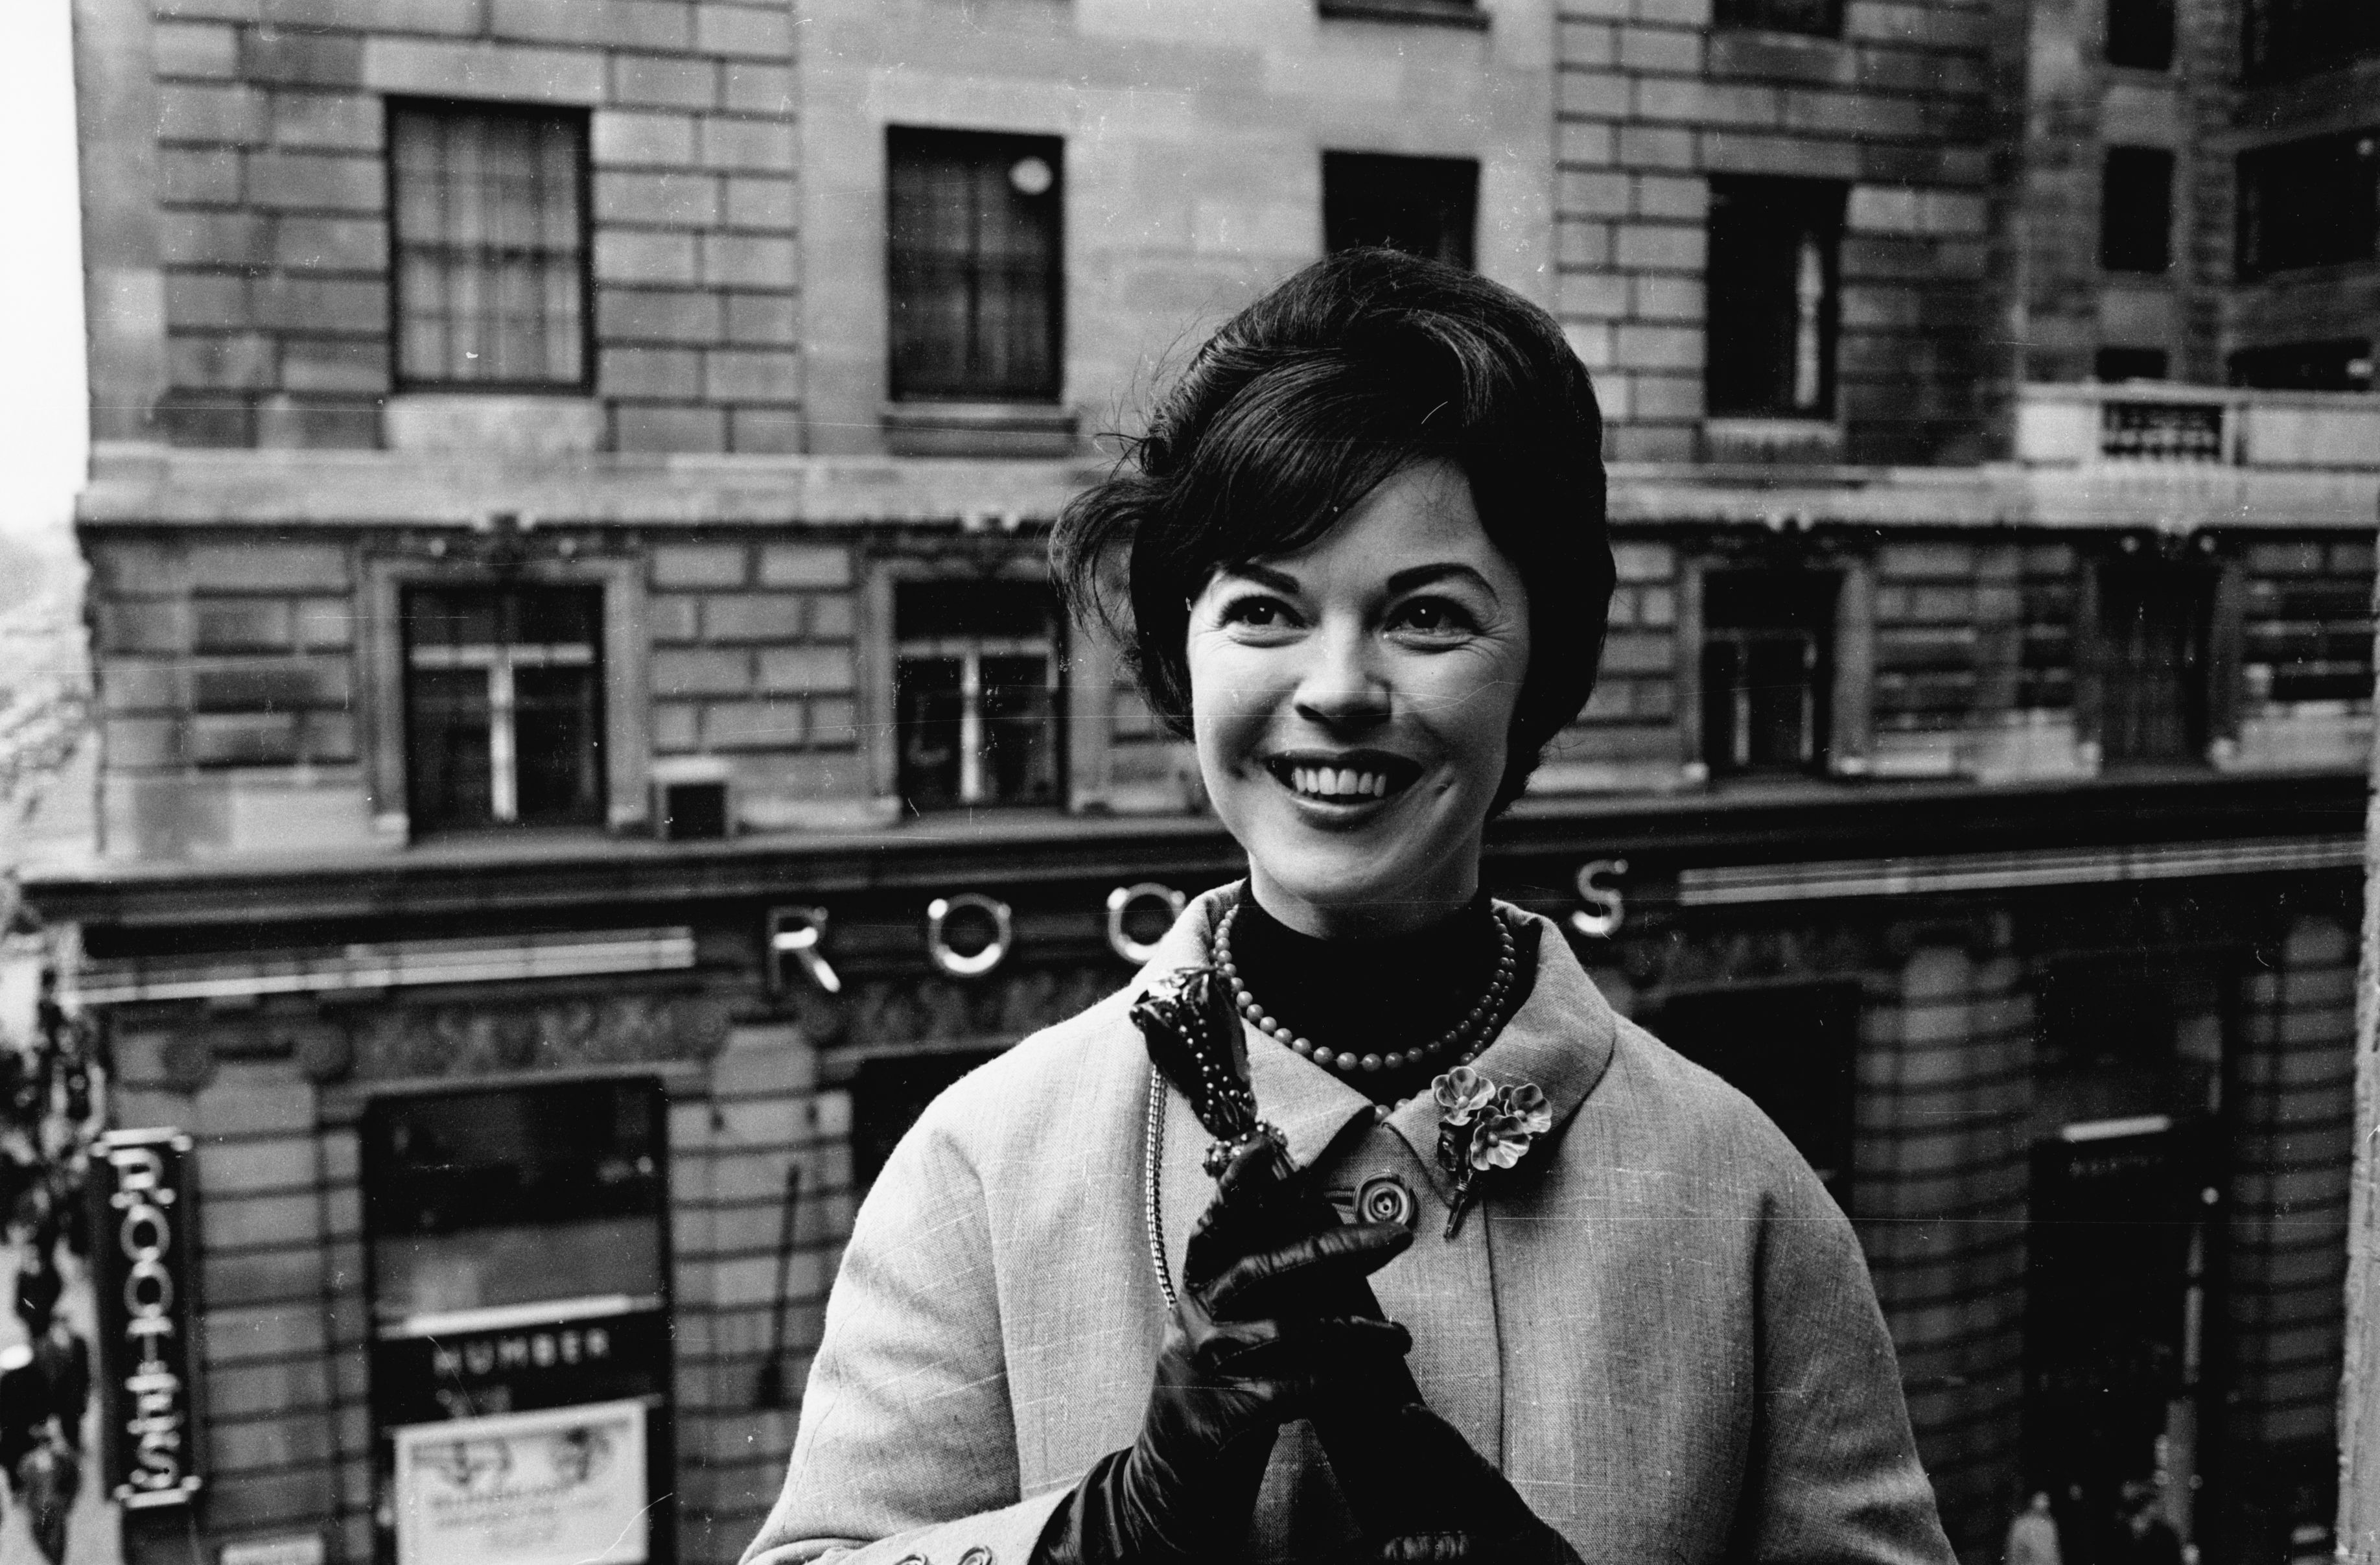 15th March 1965: Film star Shirley Temple Black on a visit to London. | Source: Getty Images